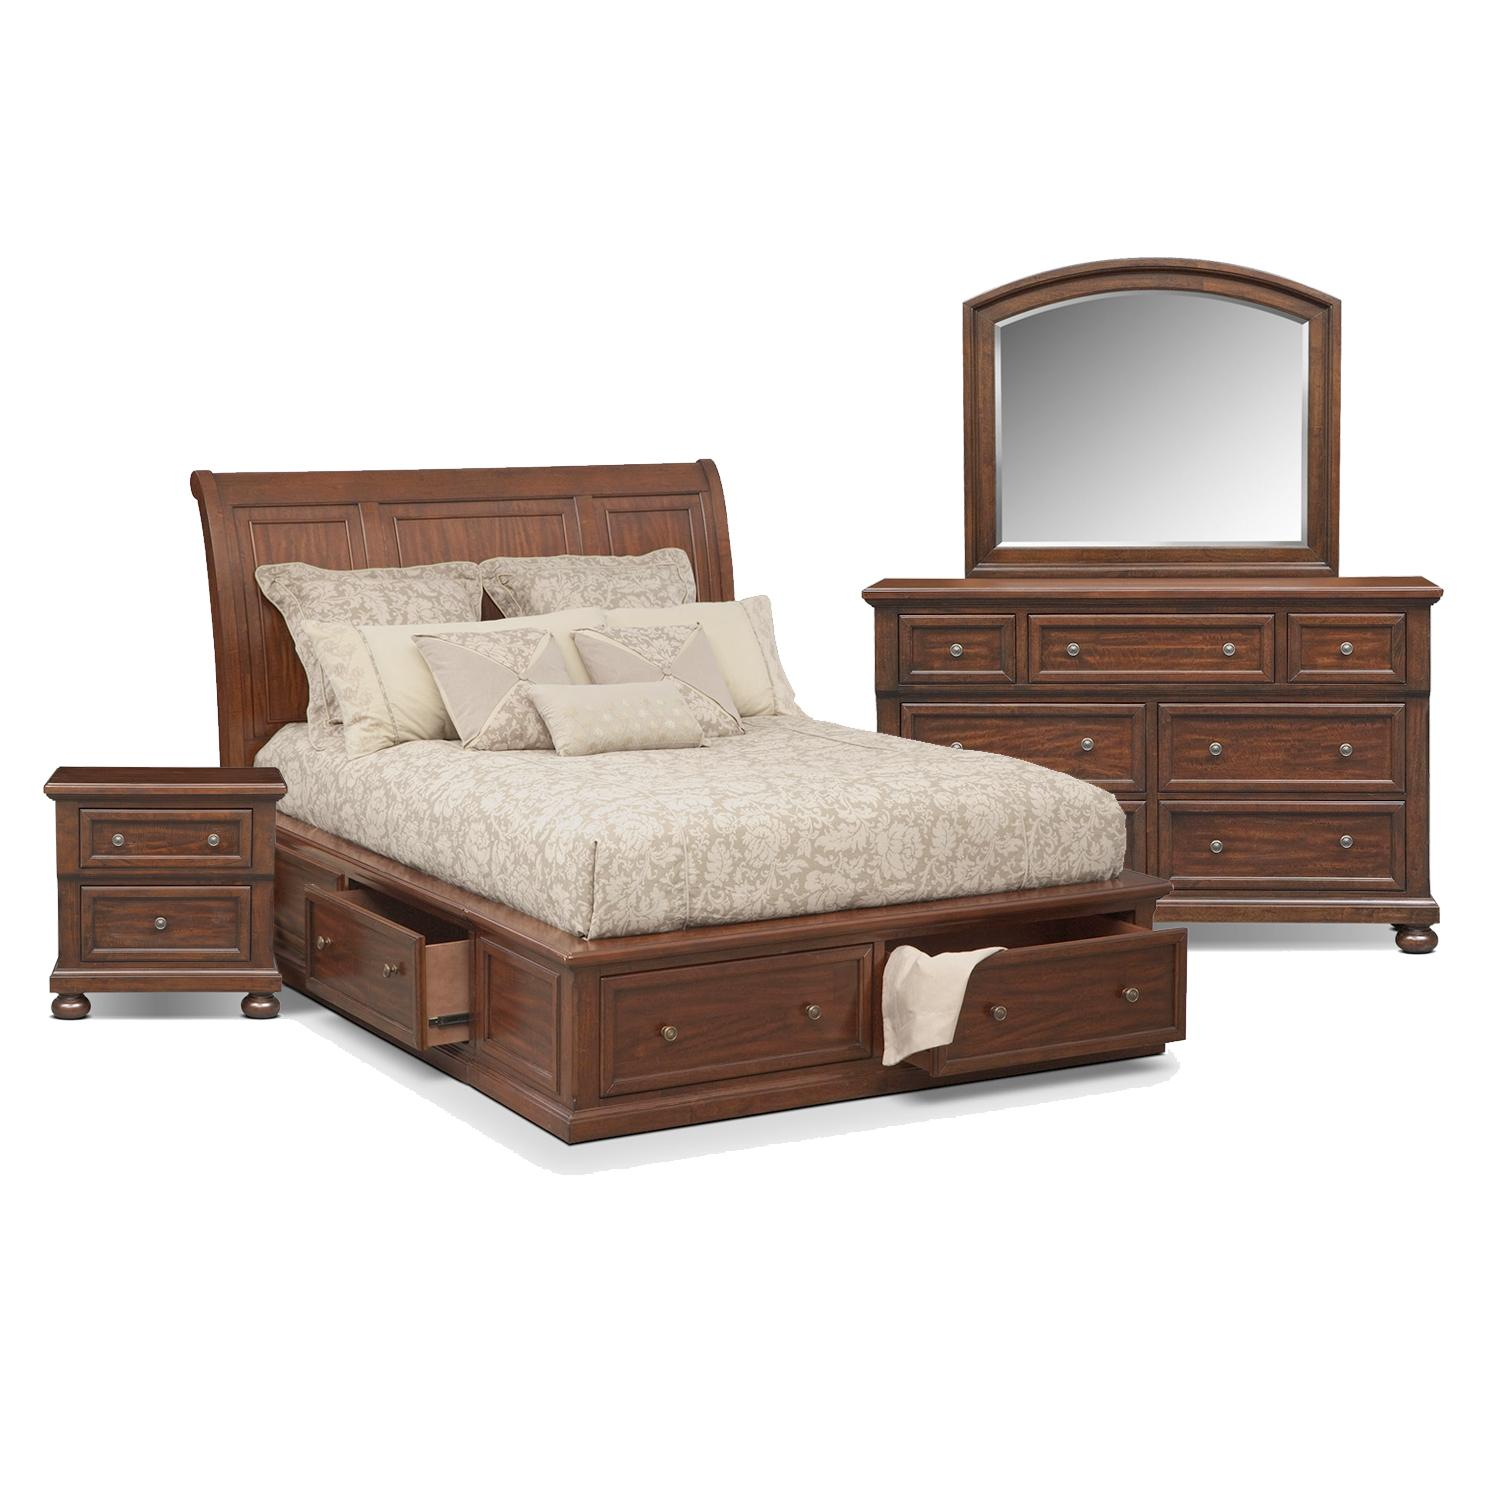 Bedroom Furniture Styles